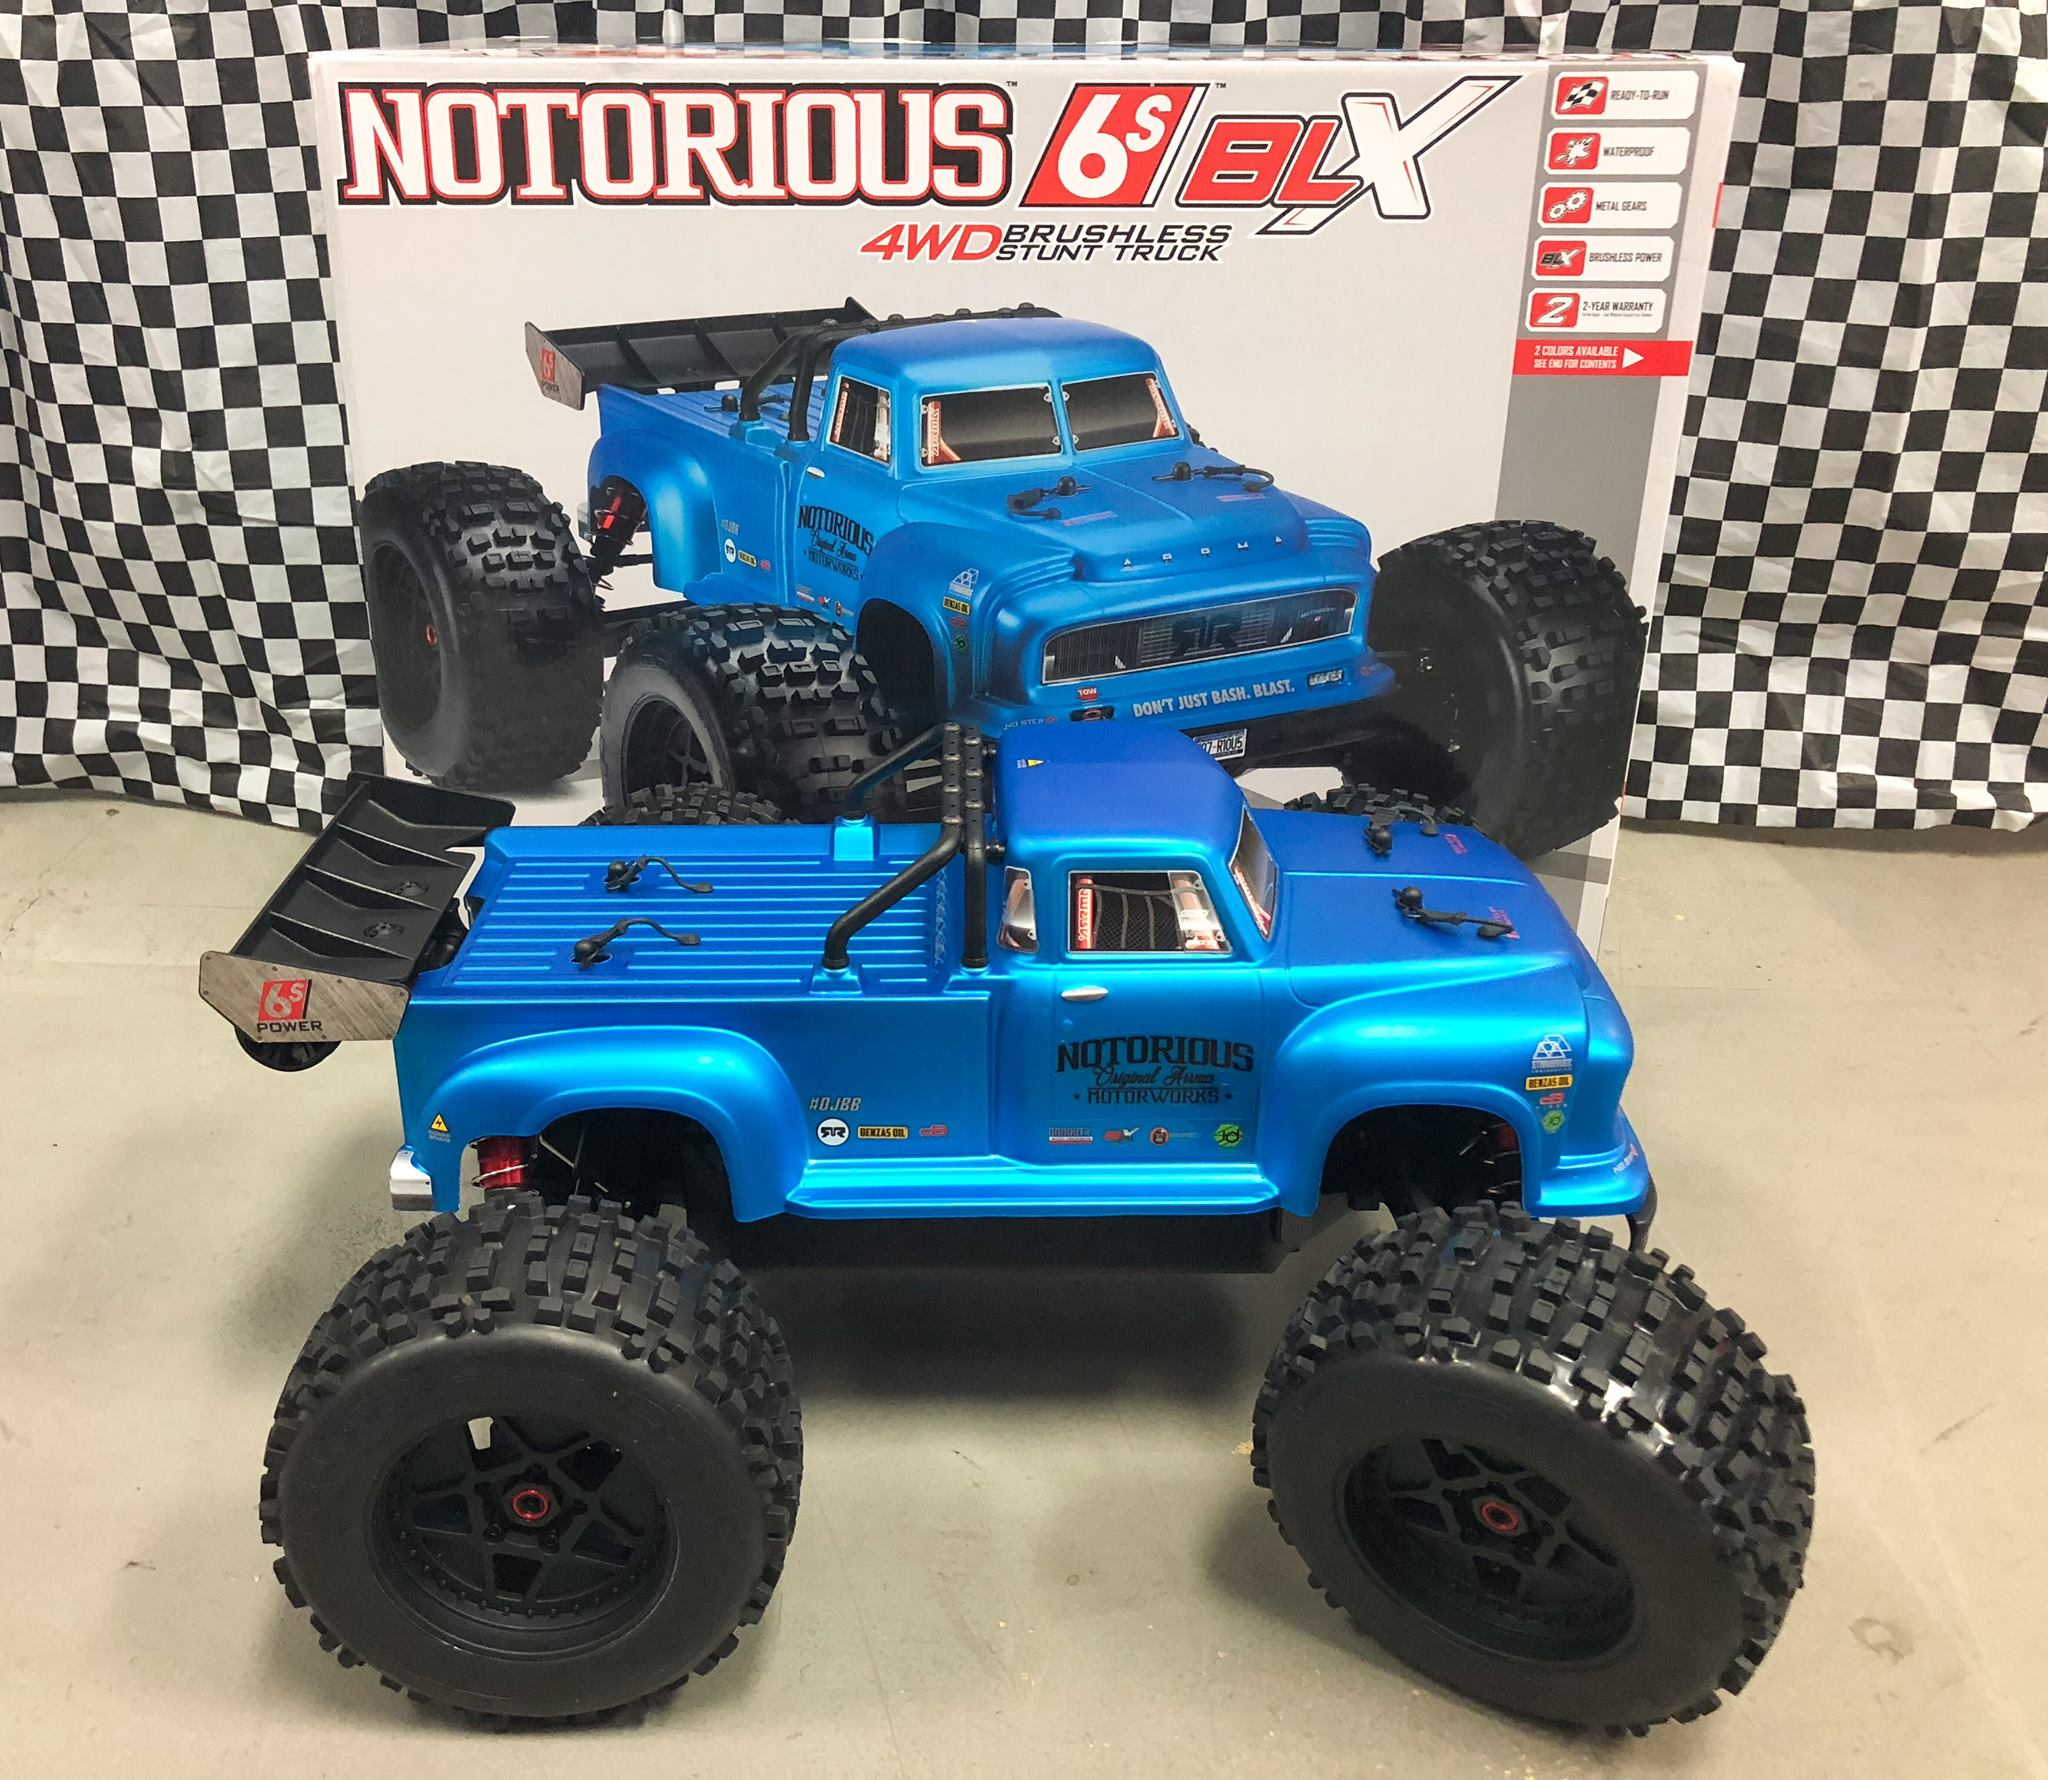 NEW - Eflite V900 & Arrma Notorious!